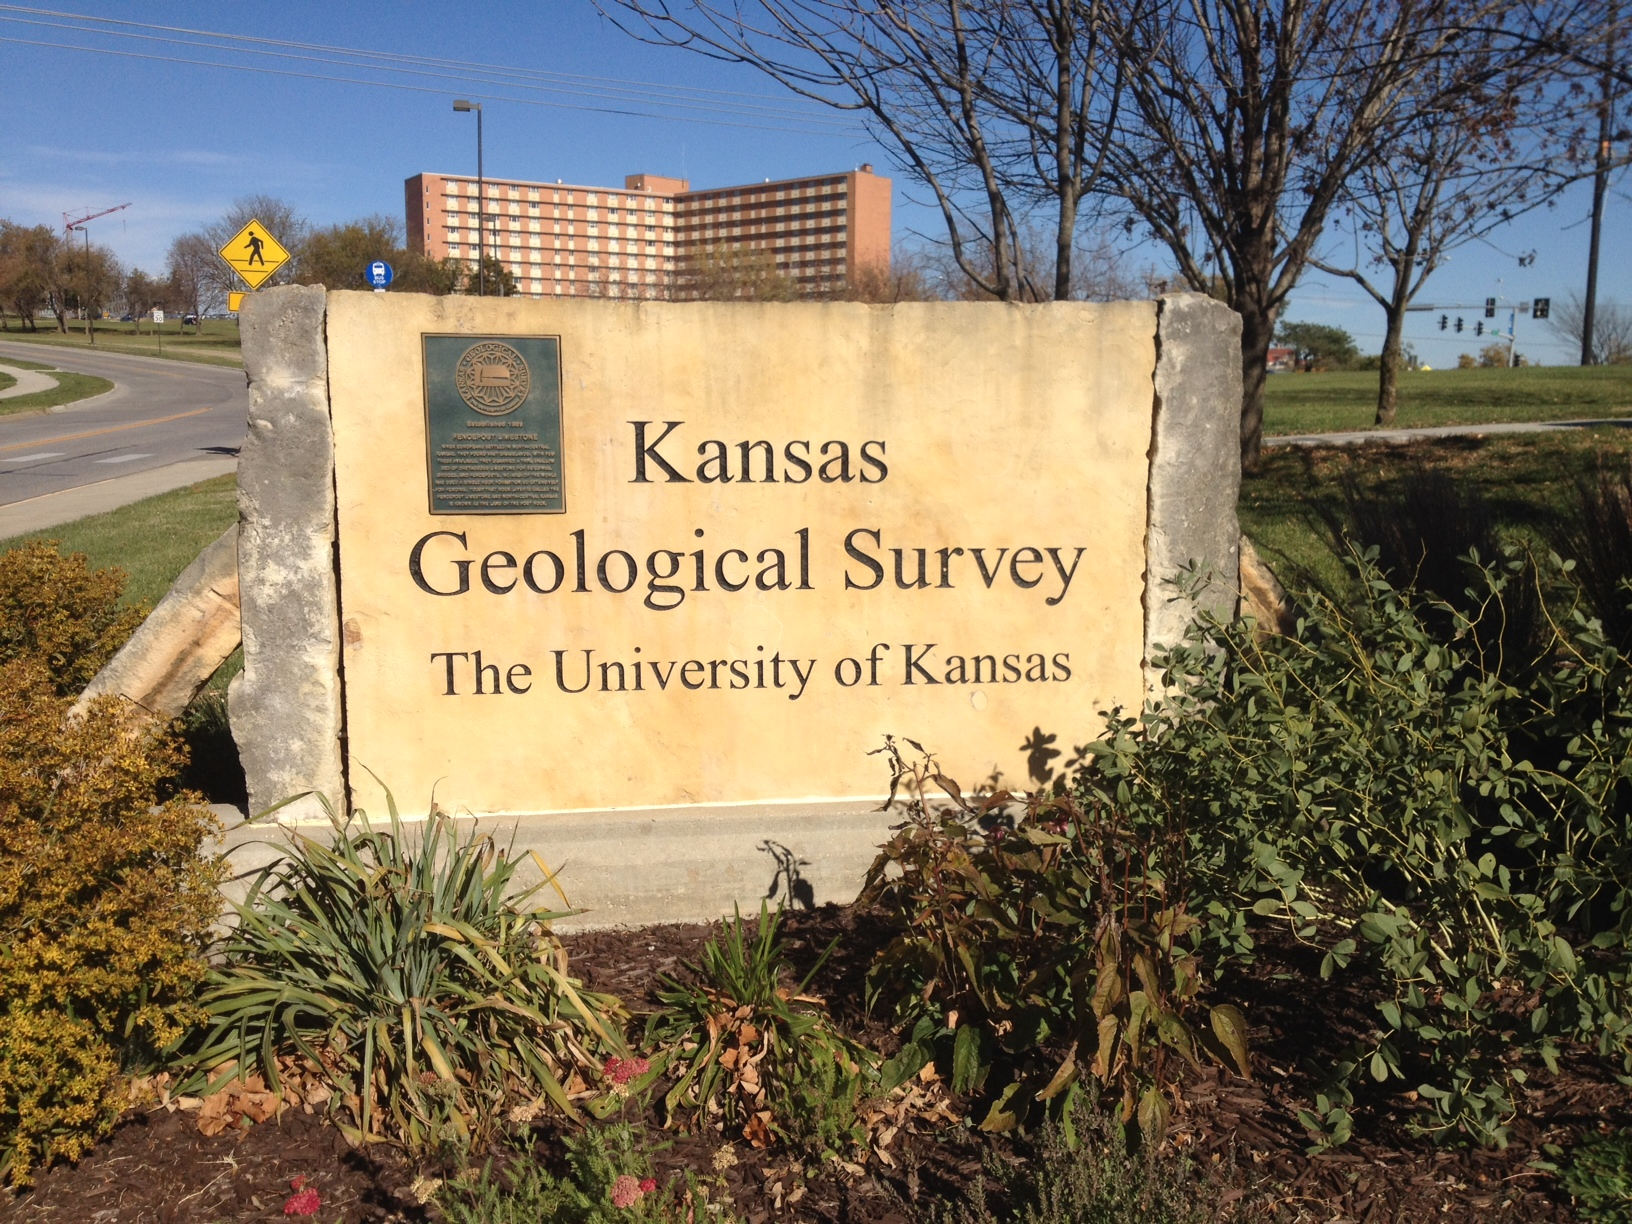 Entrance to the Kansas Geological Survey at the University of Kansas (Photo by J. Schafer)